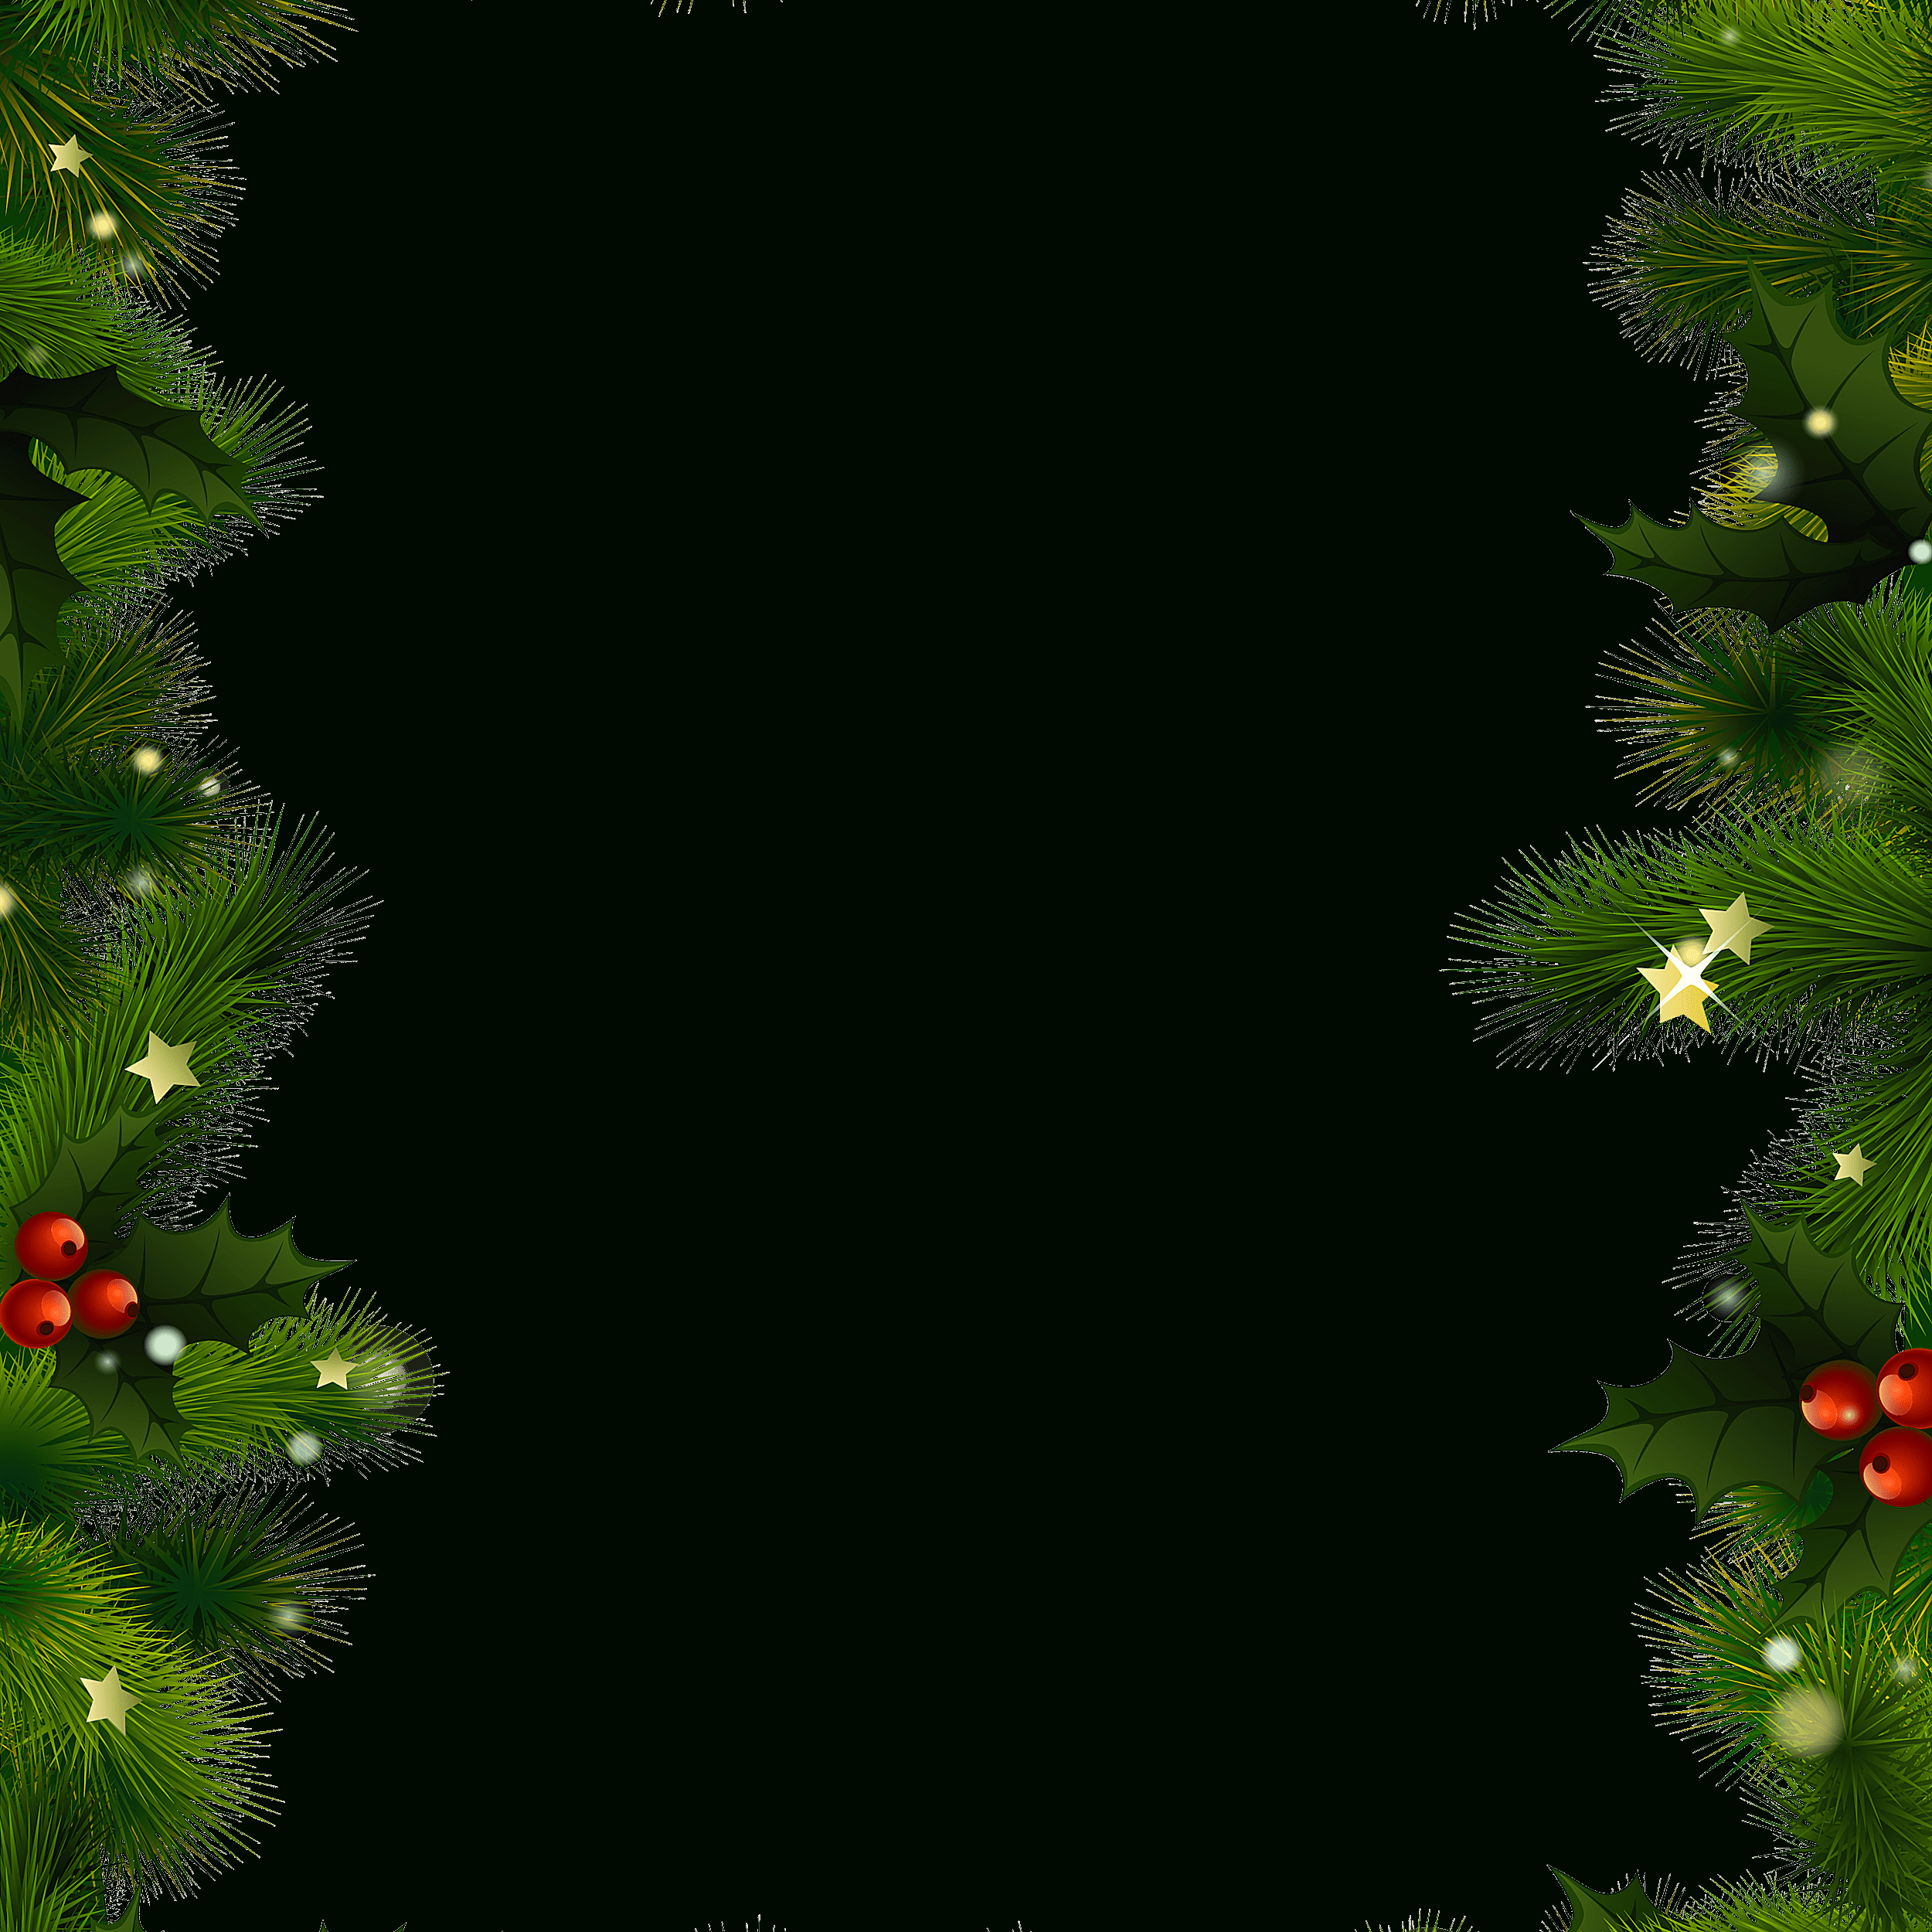 Free Christmas Borders And Frames - Free Printable Christmas Frames And Borders